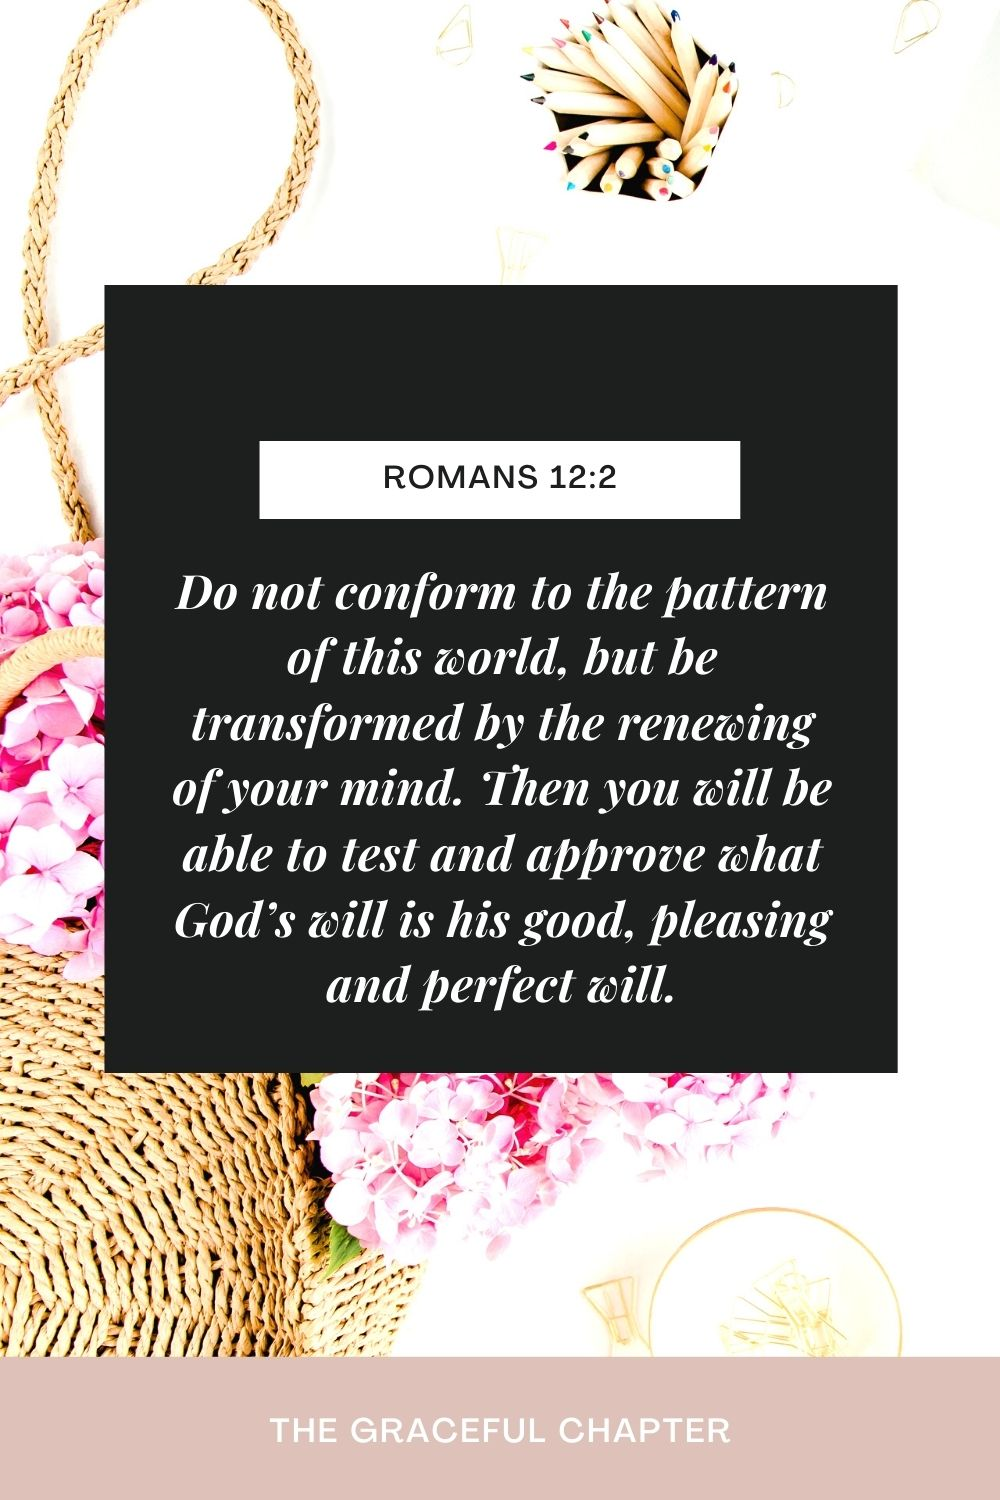 Do not conform to the pattern of this world, but be transformed by the renewing of your mind. Then you will be able to test and approve what God's will is his good, pleasing and perfect will. Romans 12:2